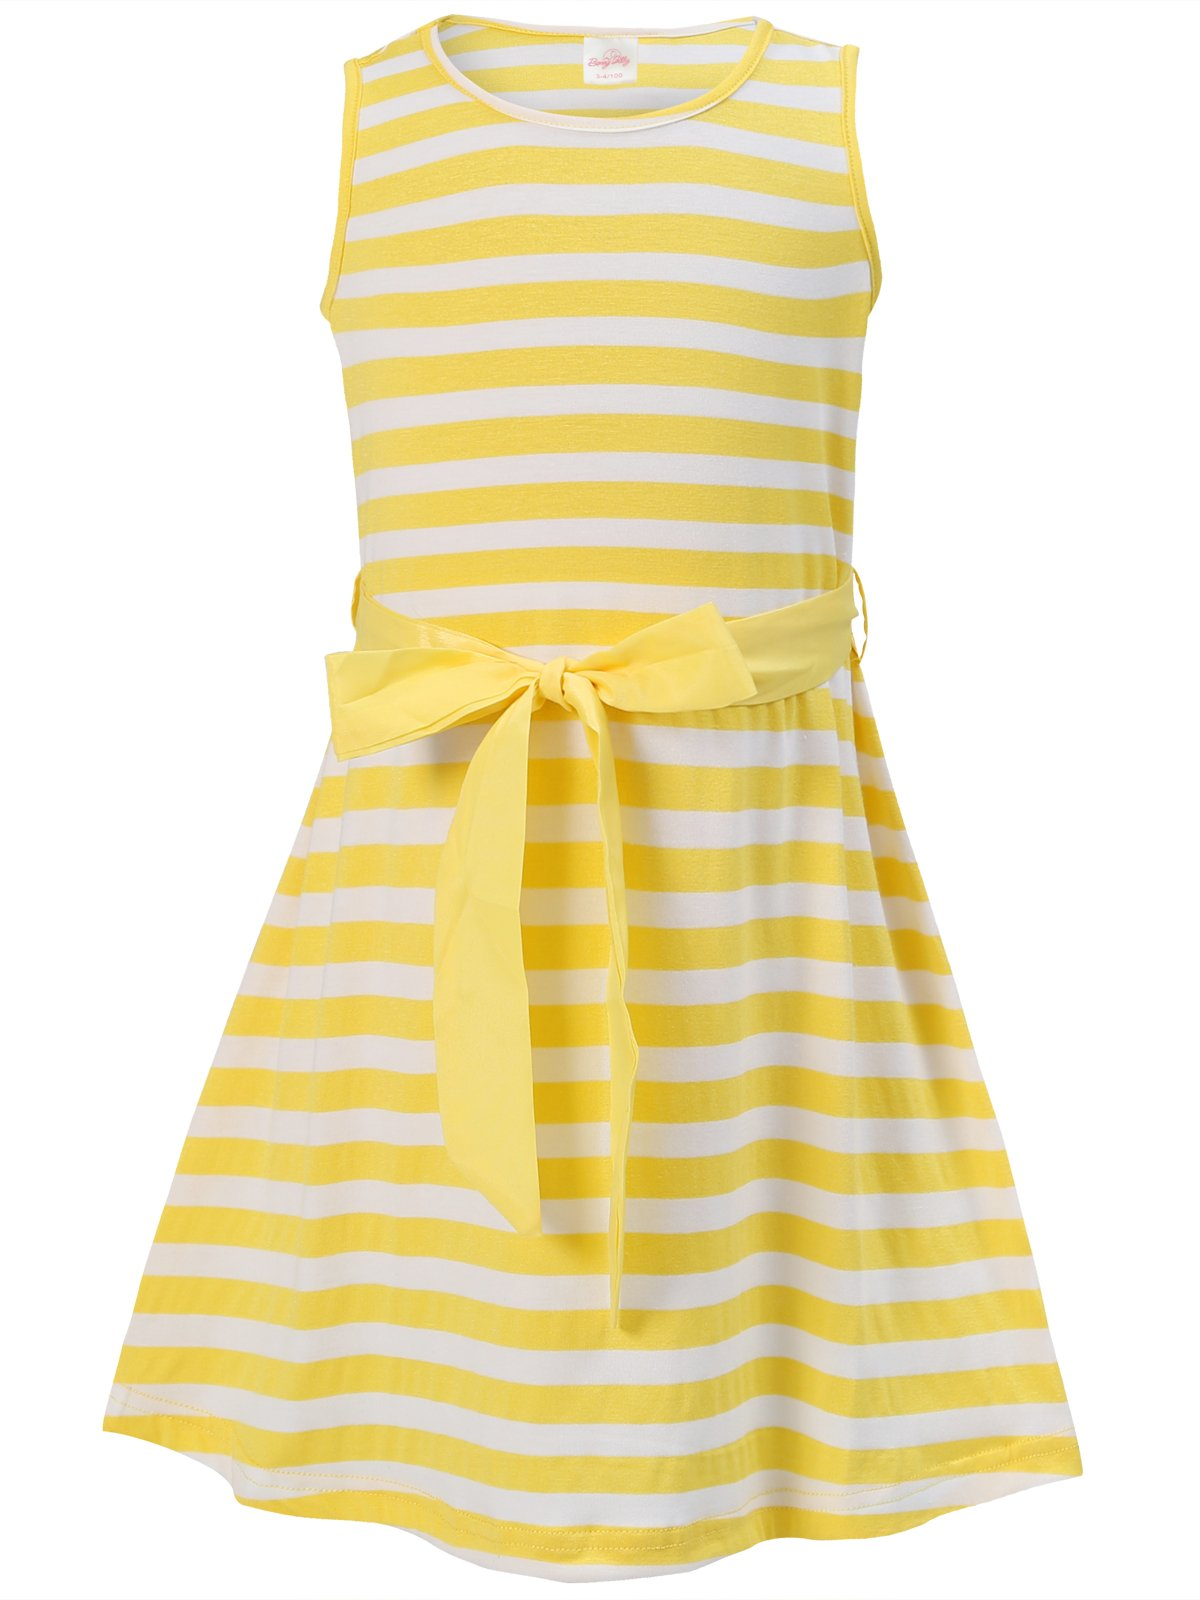 Bonny Billy Girls' Back to School Stripe Knit Dress with Removable Sash 10-11 Years Yellow